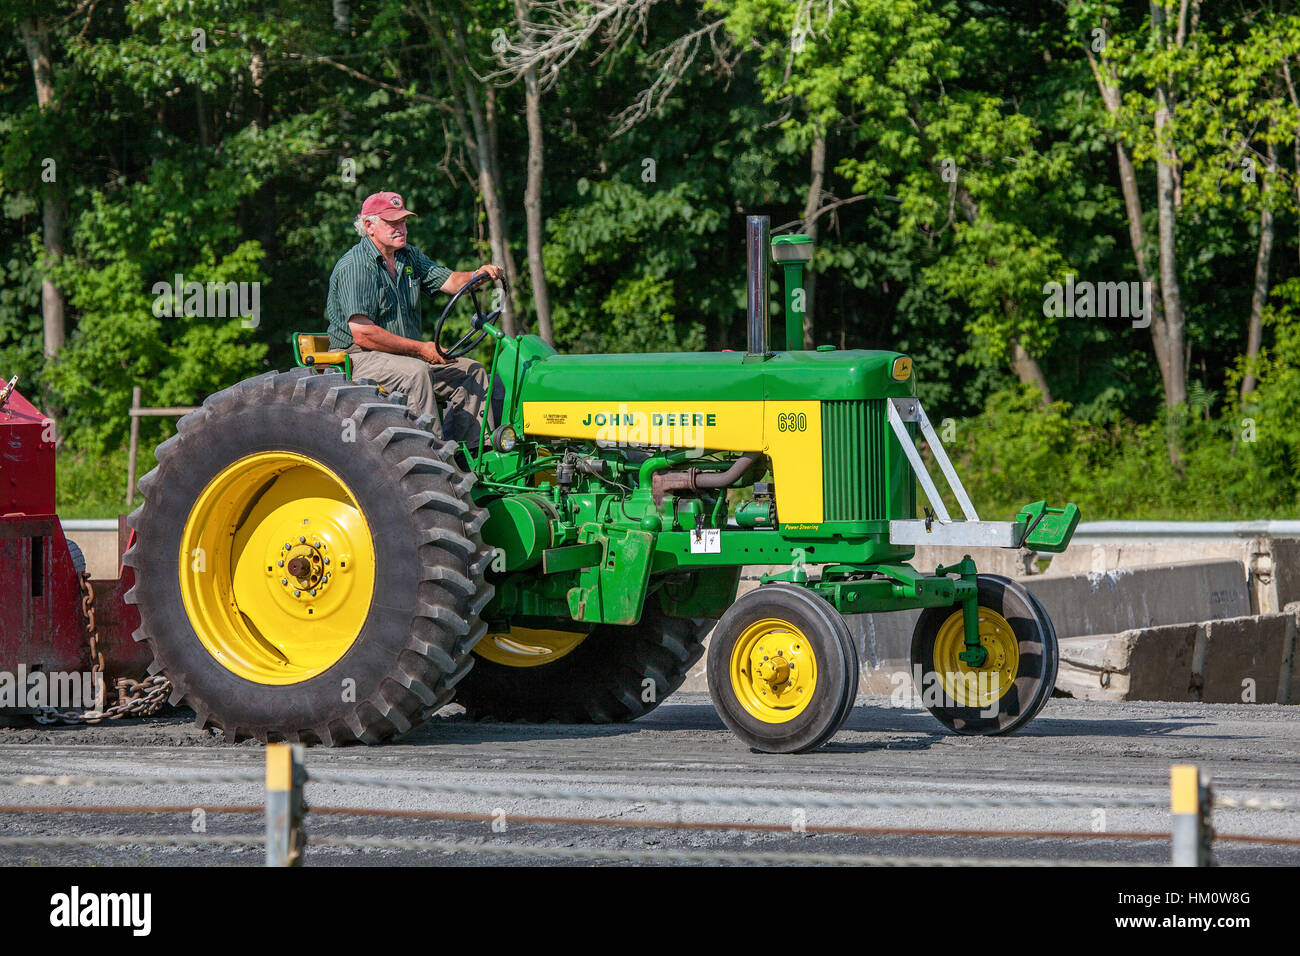 A farmer drives his John Deere model 630 tractor in the